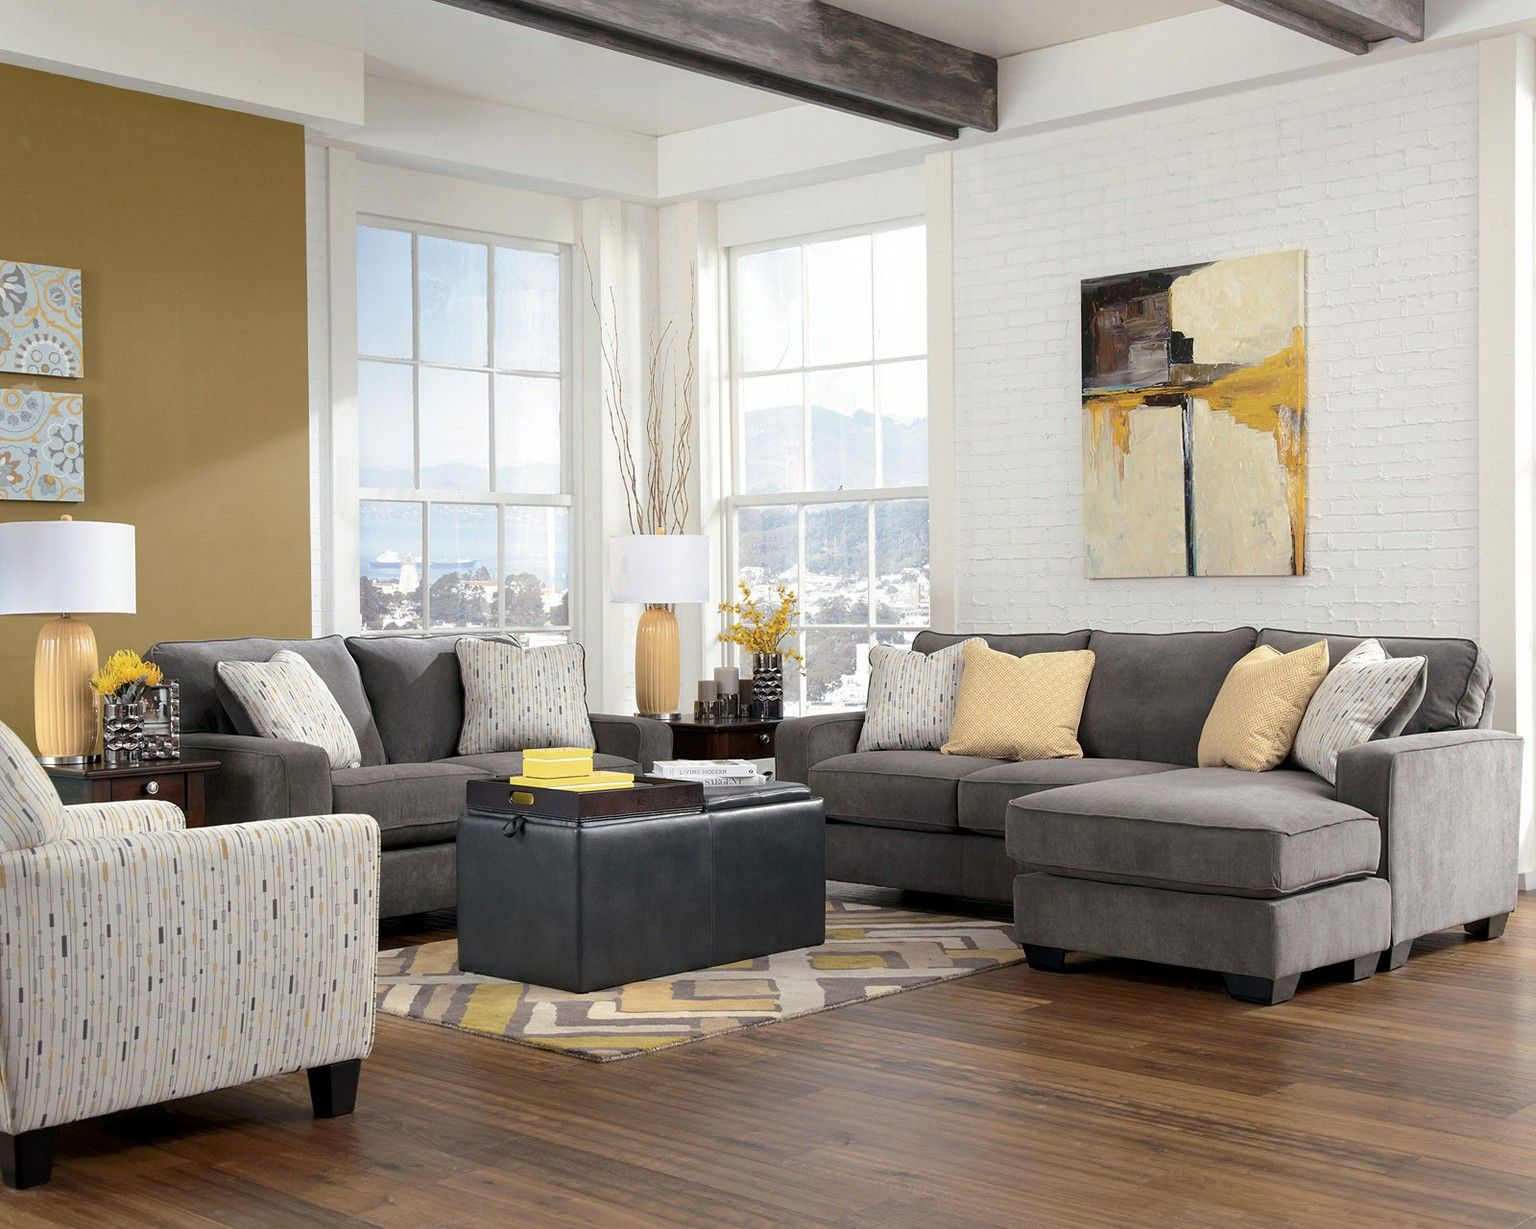 Permalink to Example Of Meant For Grey Living Room Sofa Ideas Picture